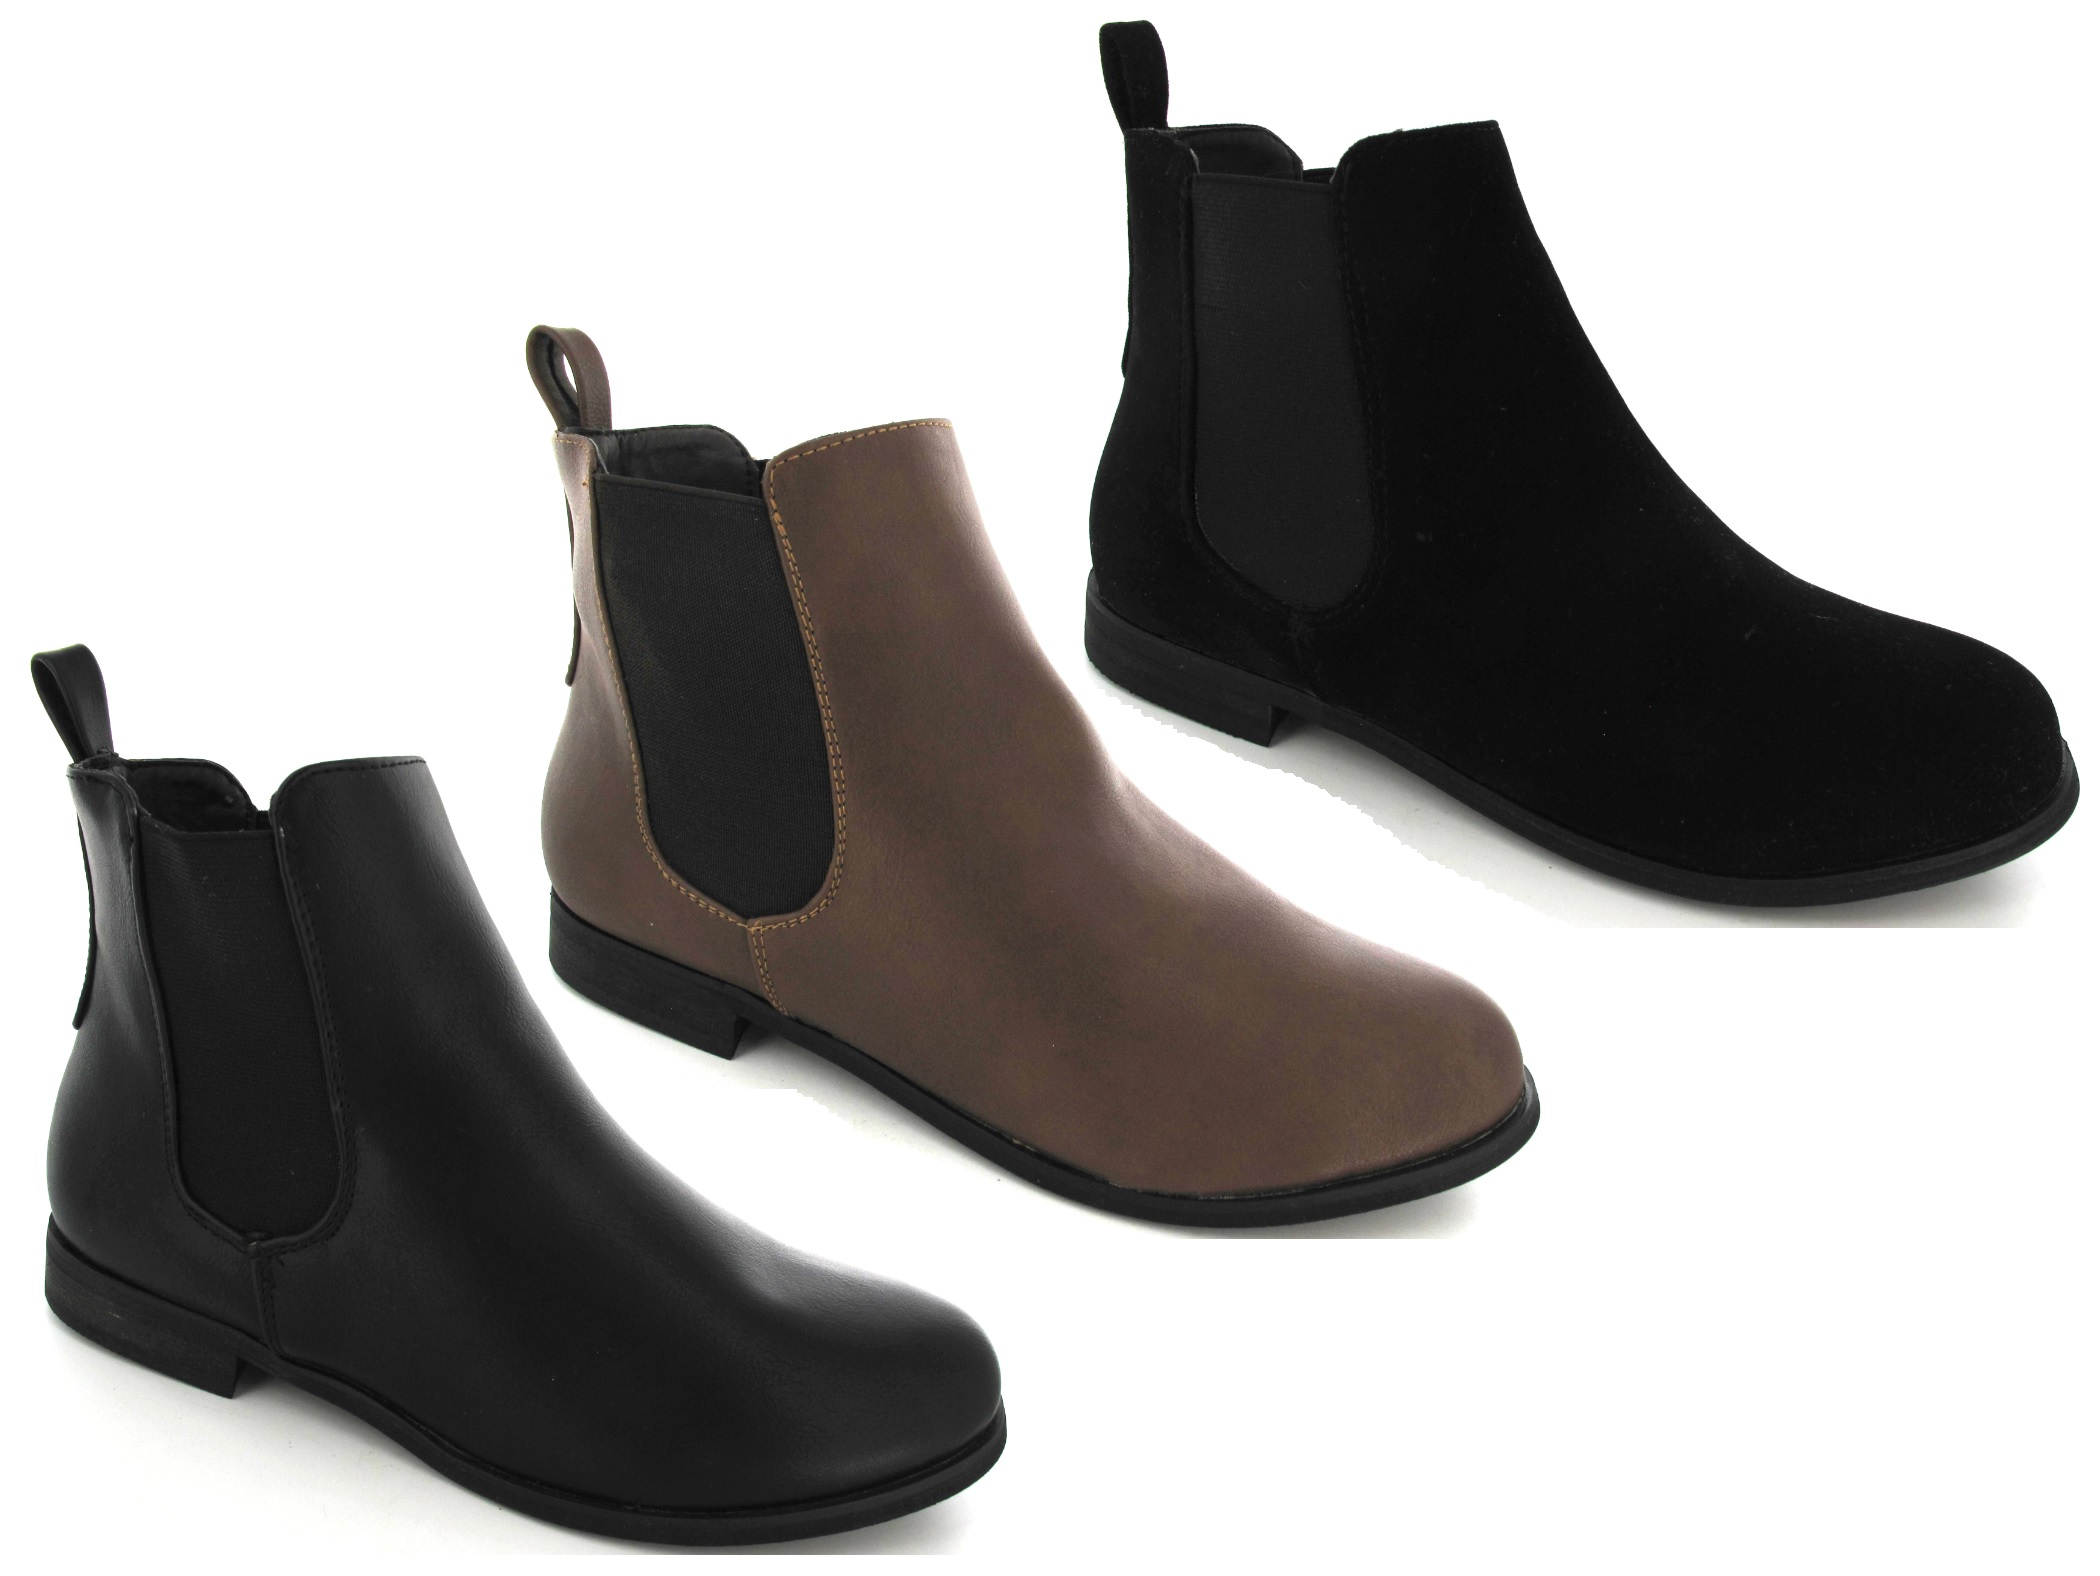 women ladies s pull on gusset chelsea elasticated flat ankle boots size 3 8 ebay. Black Bedroom Furniture Sets. Home Design Ideas